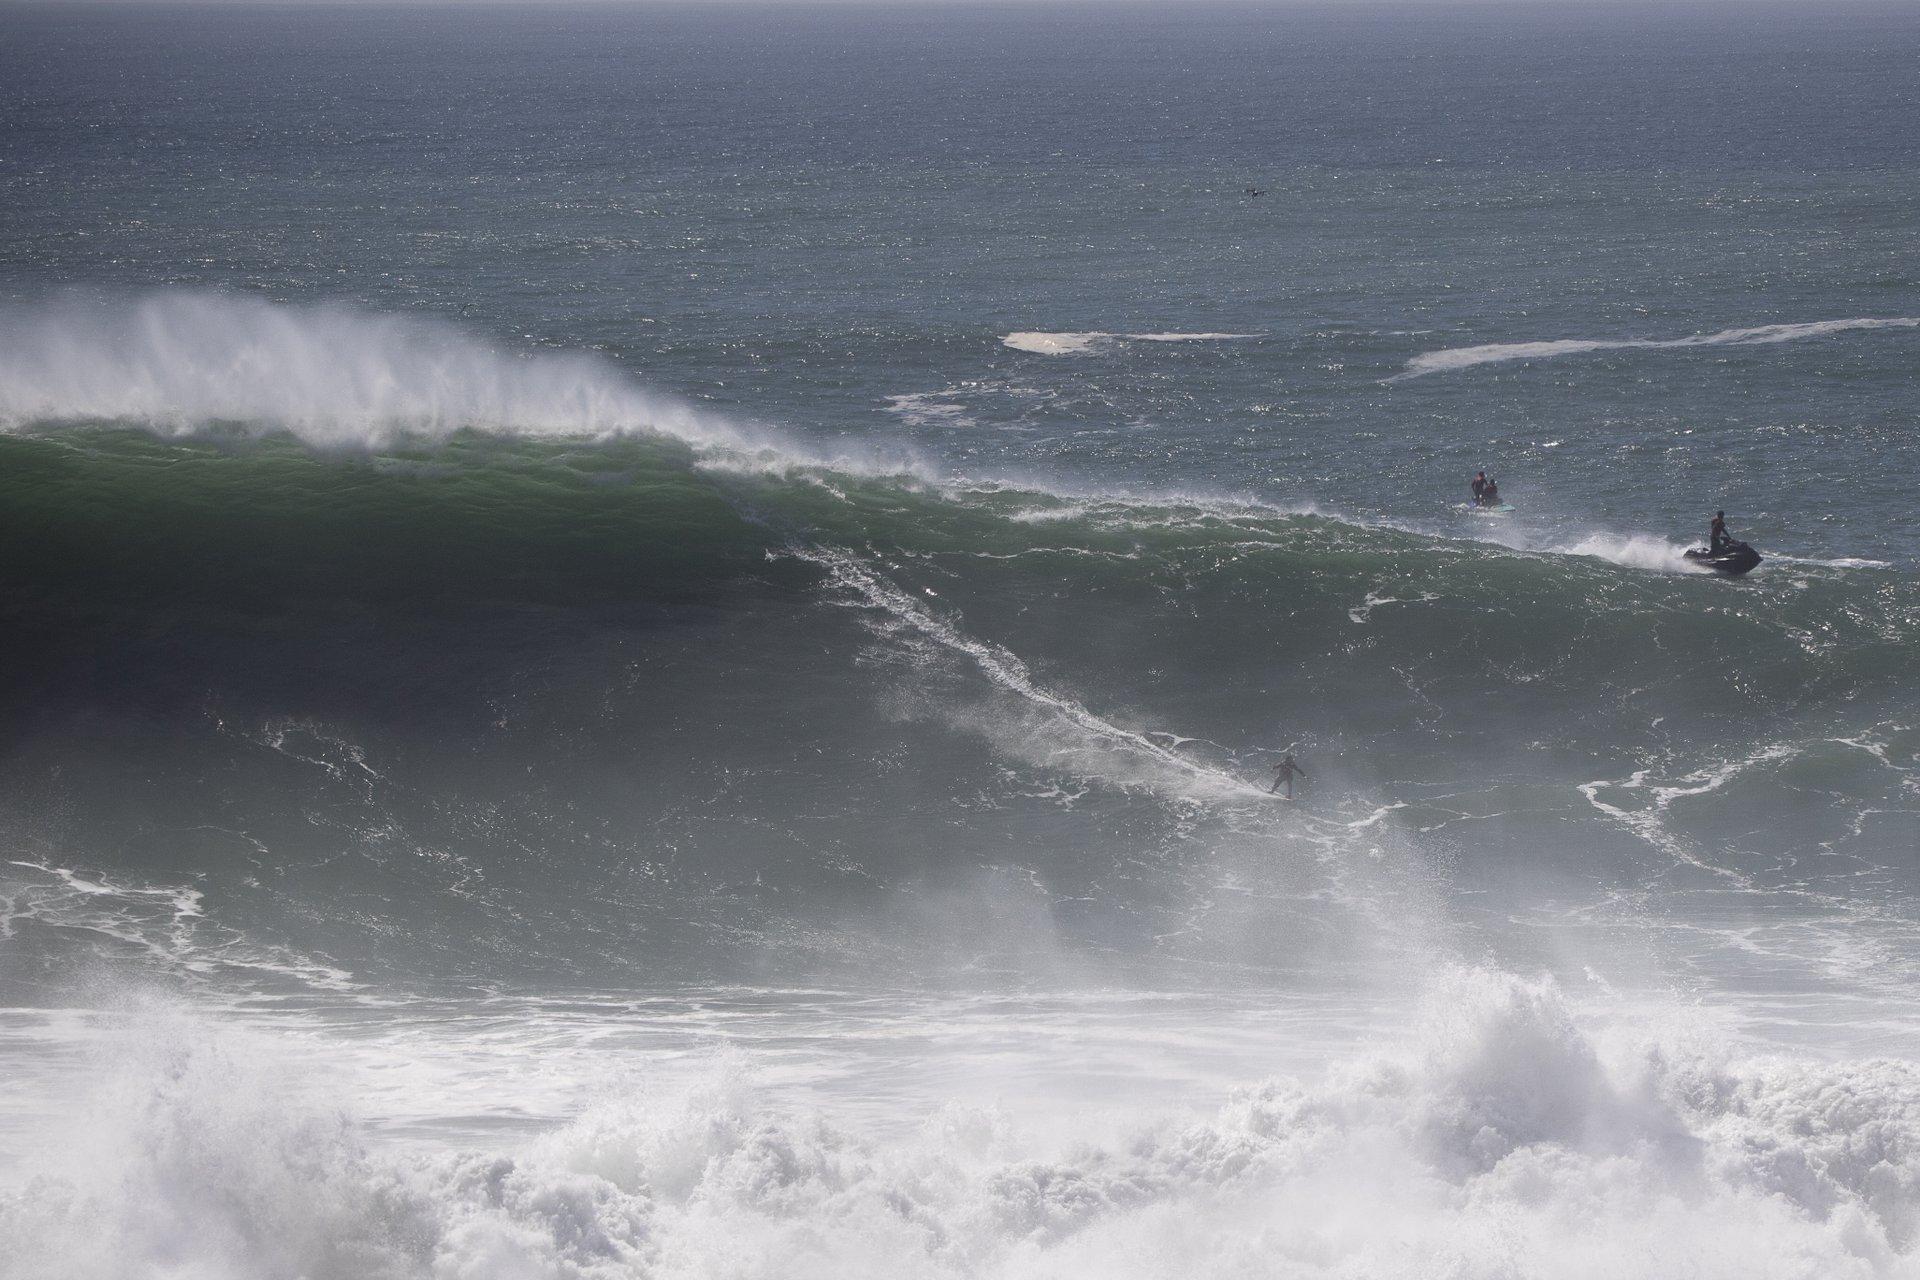 Oliver Wrinch's photo of Nazaré